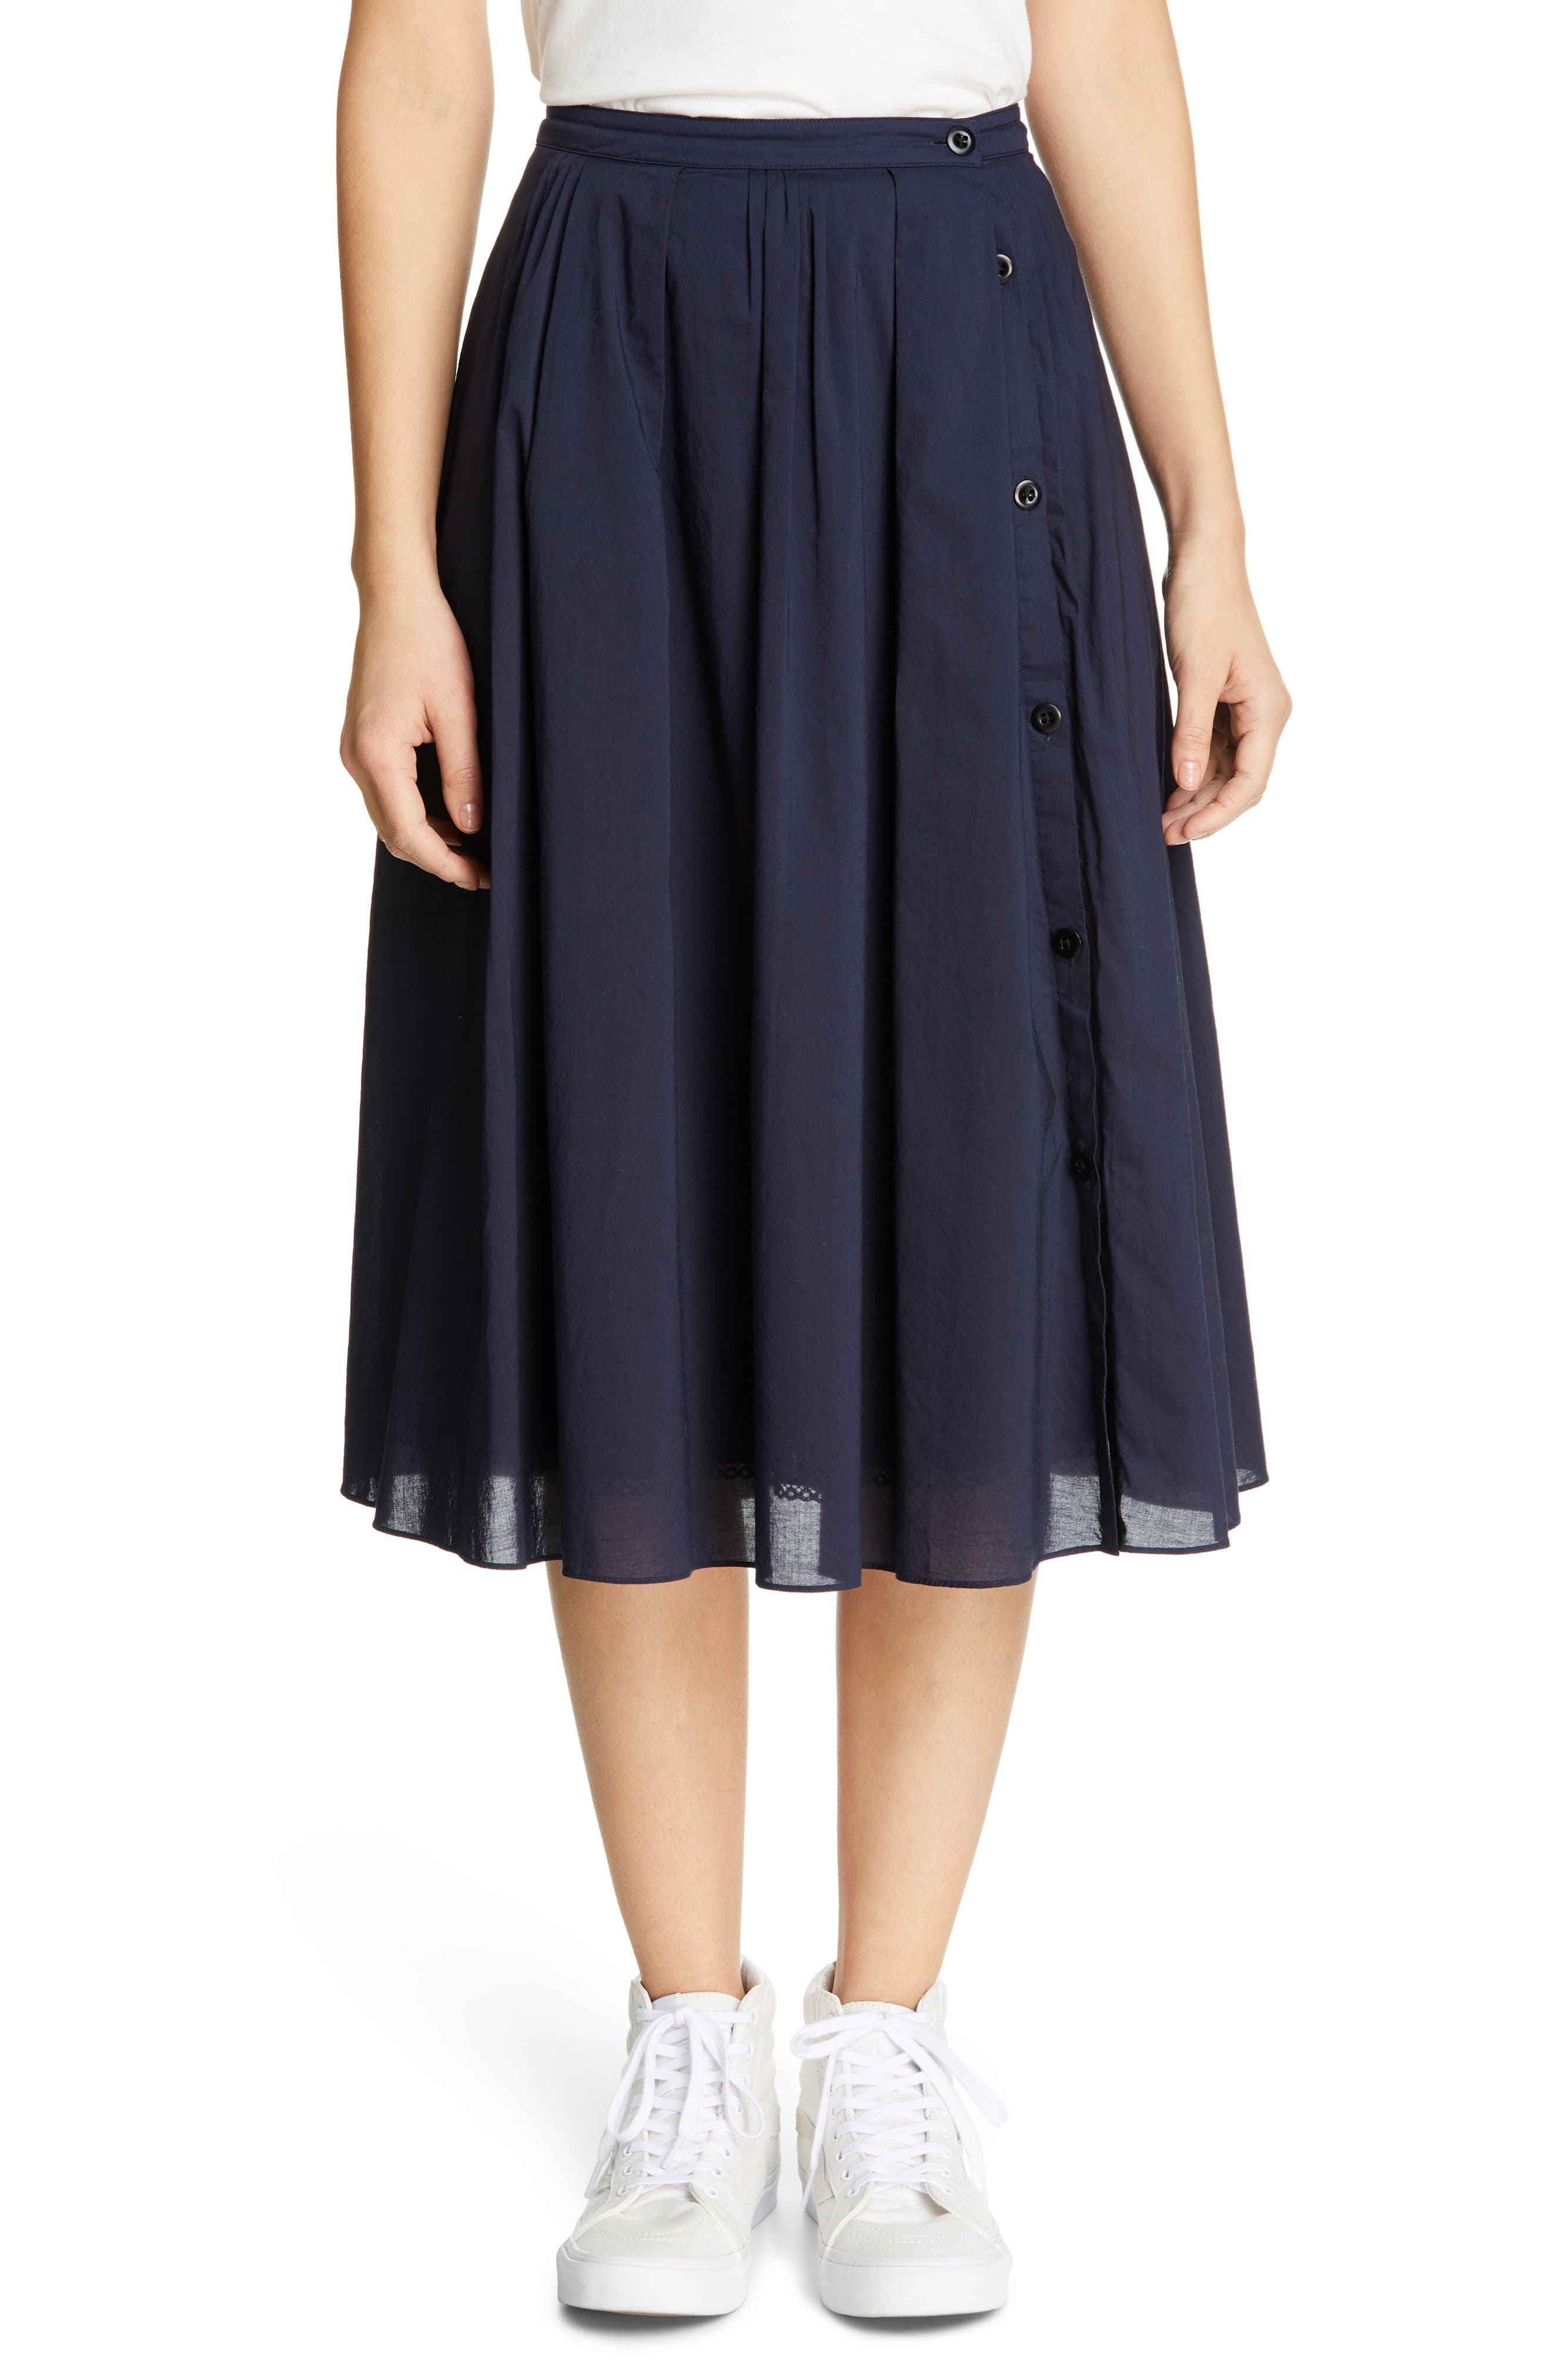 Clothing, Shoes & Accessories The Cheapest Price Boden Looks Great Colour Chloe Cotton A Line Skirt Size 10 Reg